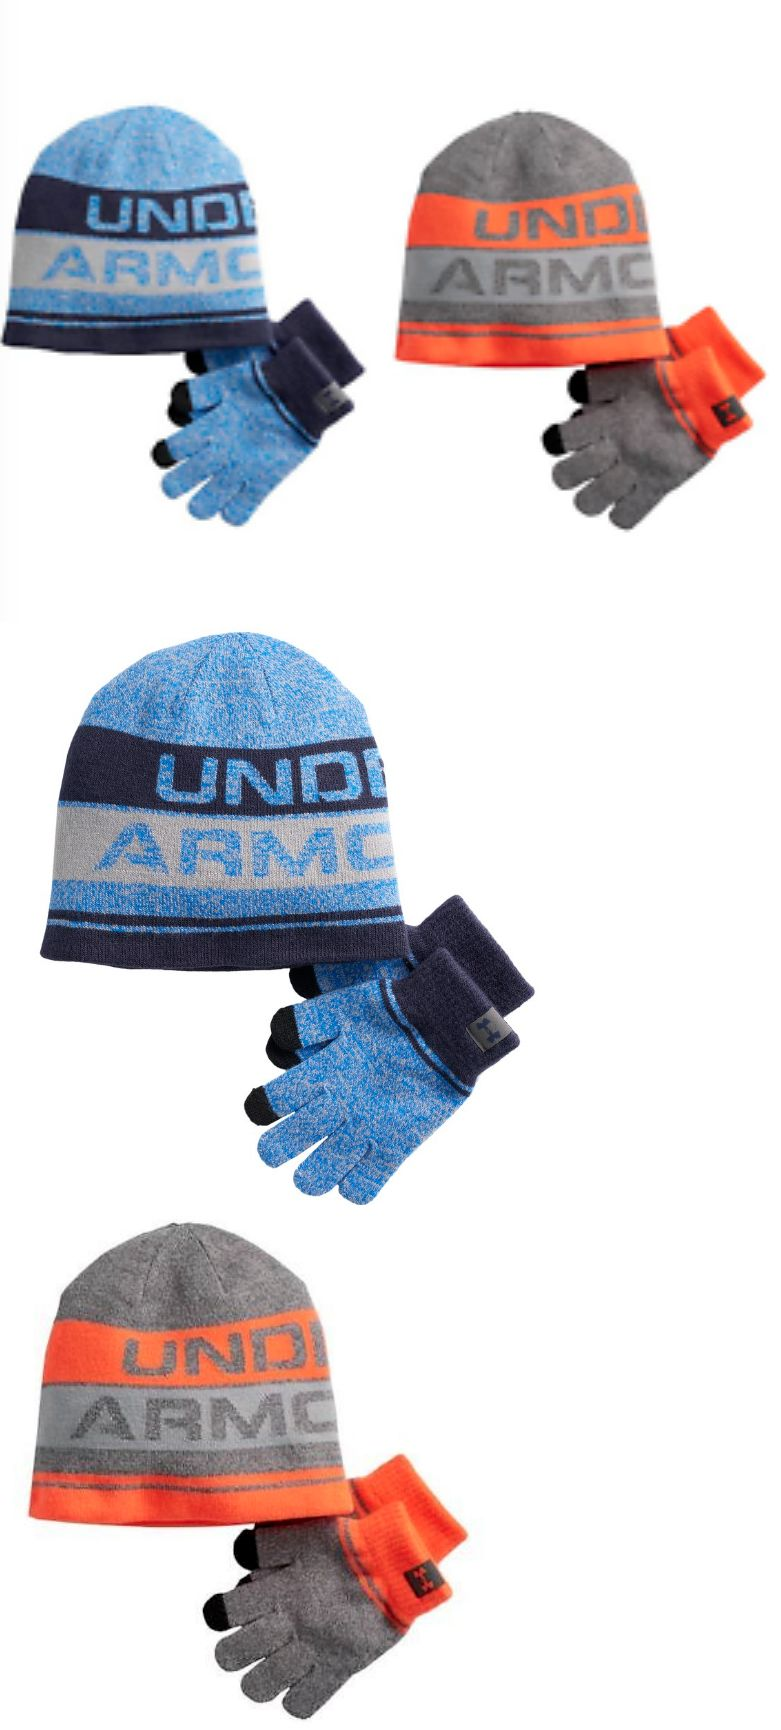 Gloves and Mittens 57885  New Boys Youth Under Armour Hat And Glove Set  Blue Orange One Size Fits Most -  BUY IT NOW ONLY   12.99 on  eBay  gloves   mittens ... 2ce82acd1d4